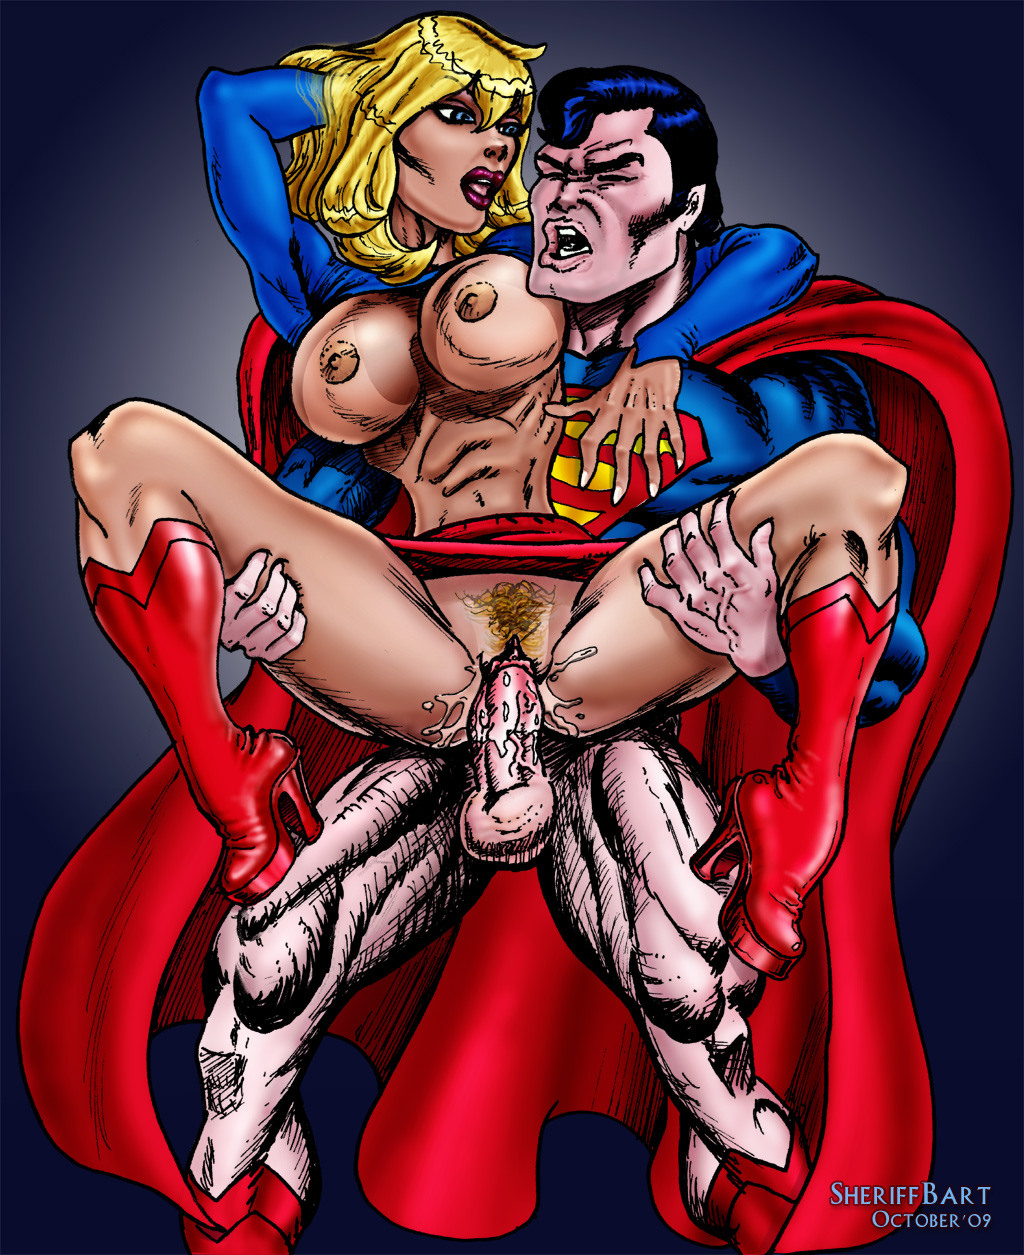 hot-superheroes-porn-girl-ful-sex